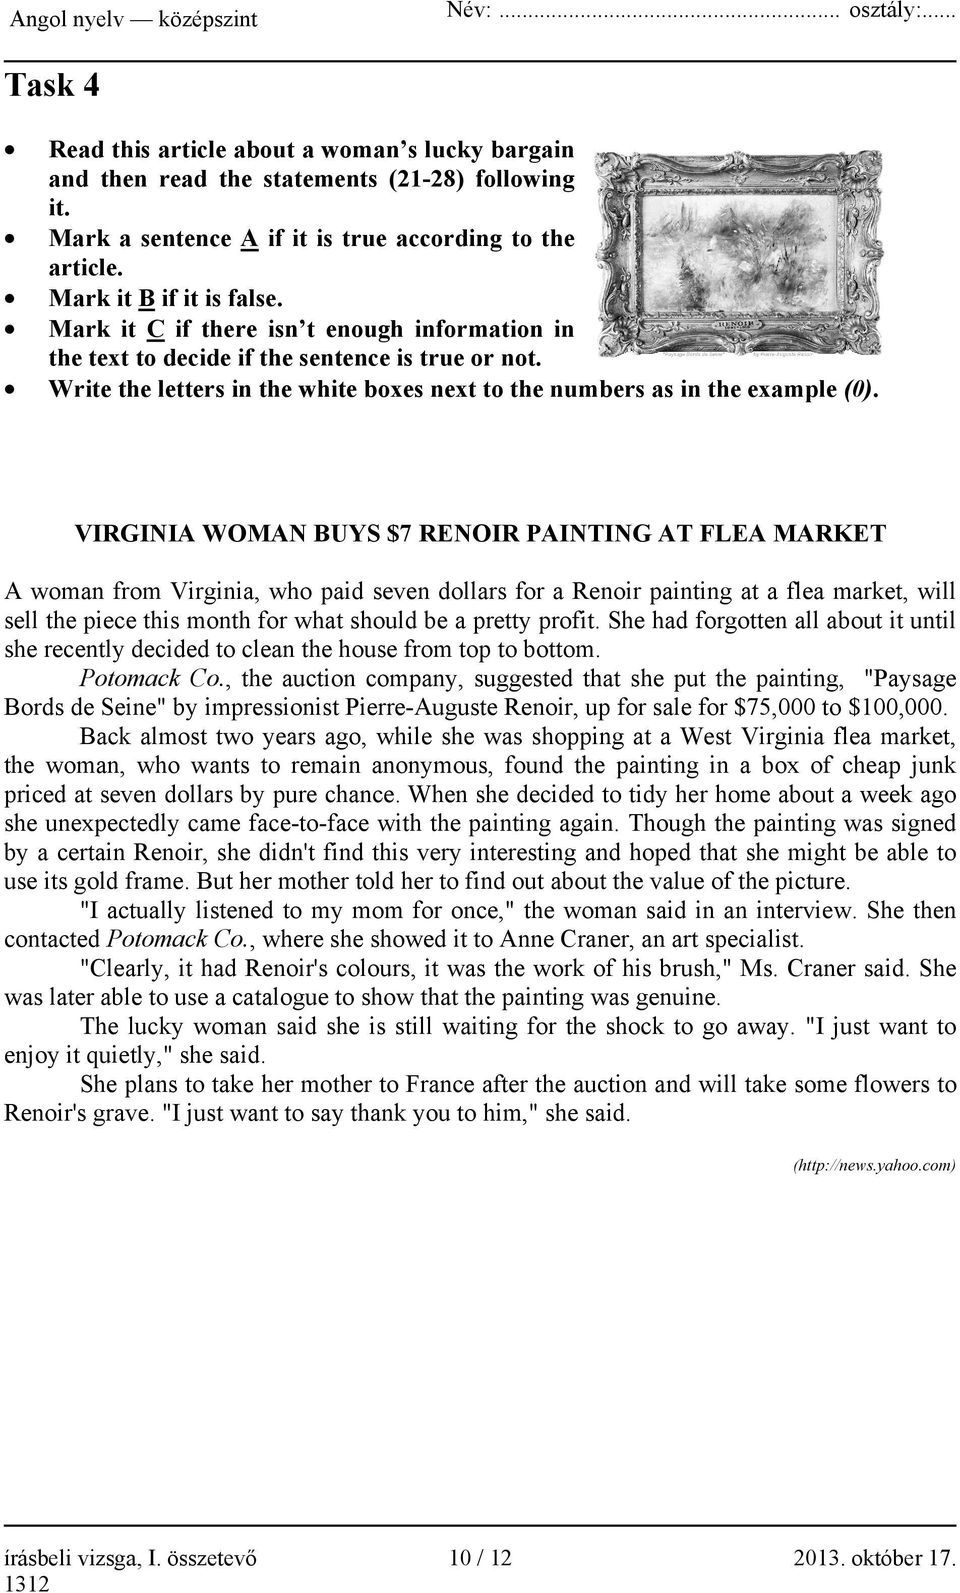 VIRGINIA WOMAN BUYS $7 RENOIR PAINTING AT FLEA MARKET A woman from Virginia, who paid seven dollars for a Renoir painting at a flea market, will sell the piece this month for what should be a pretty